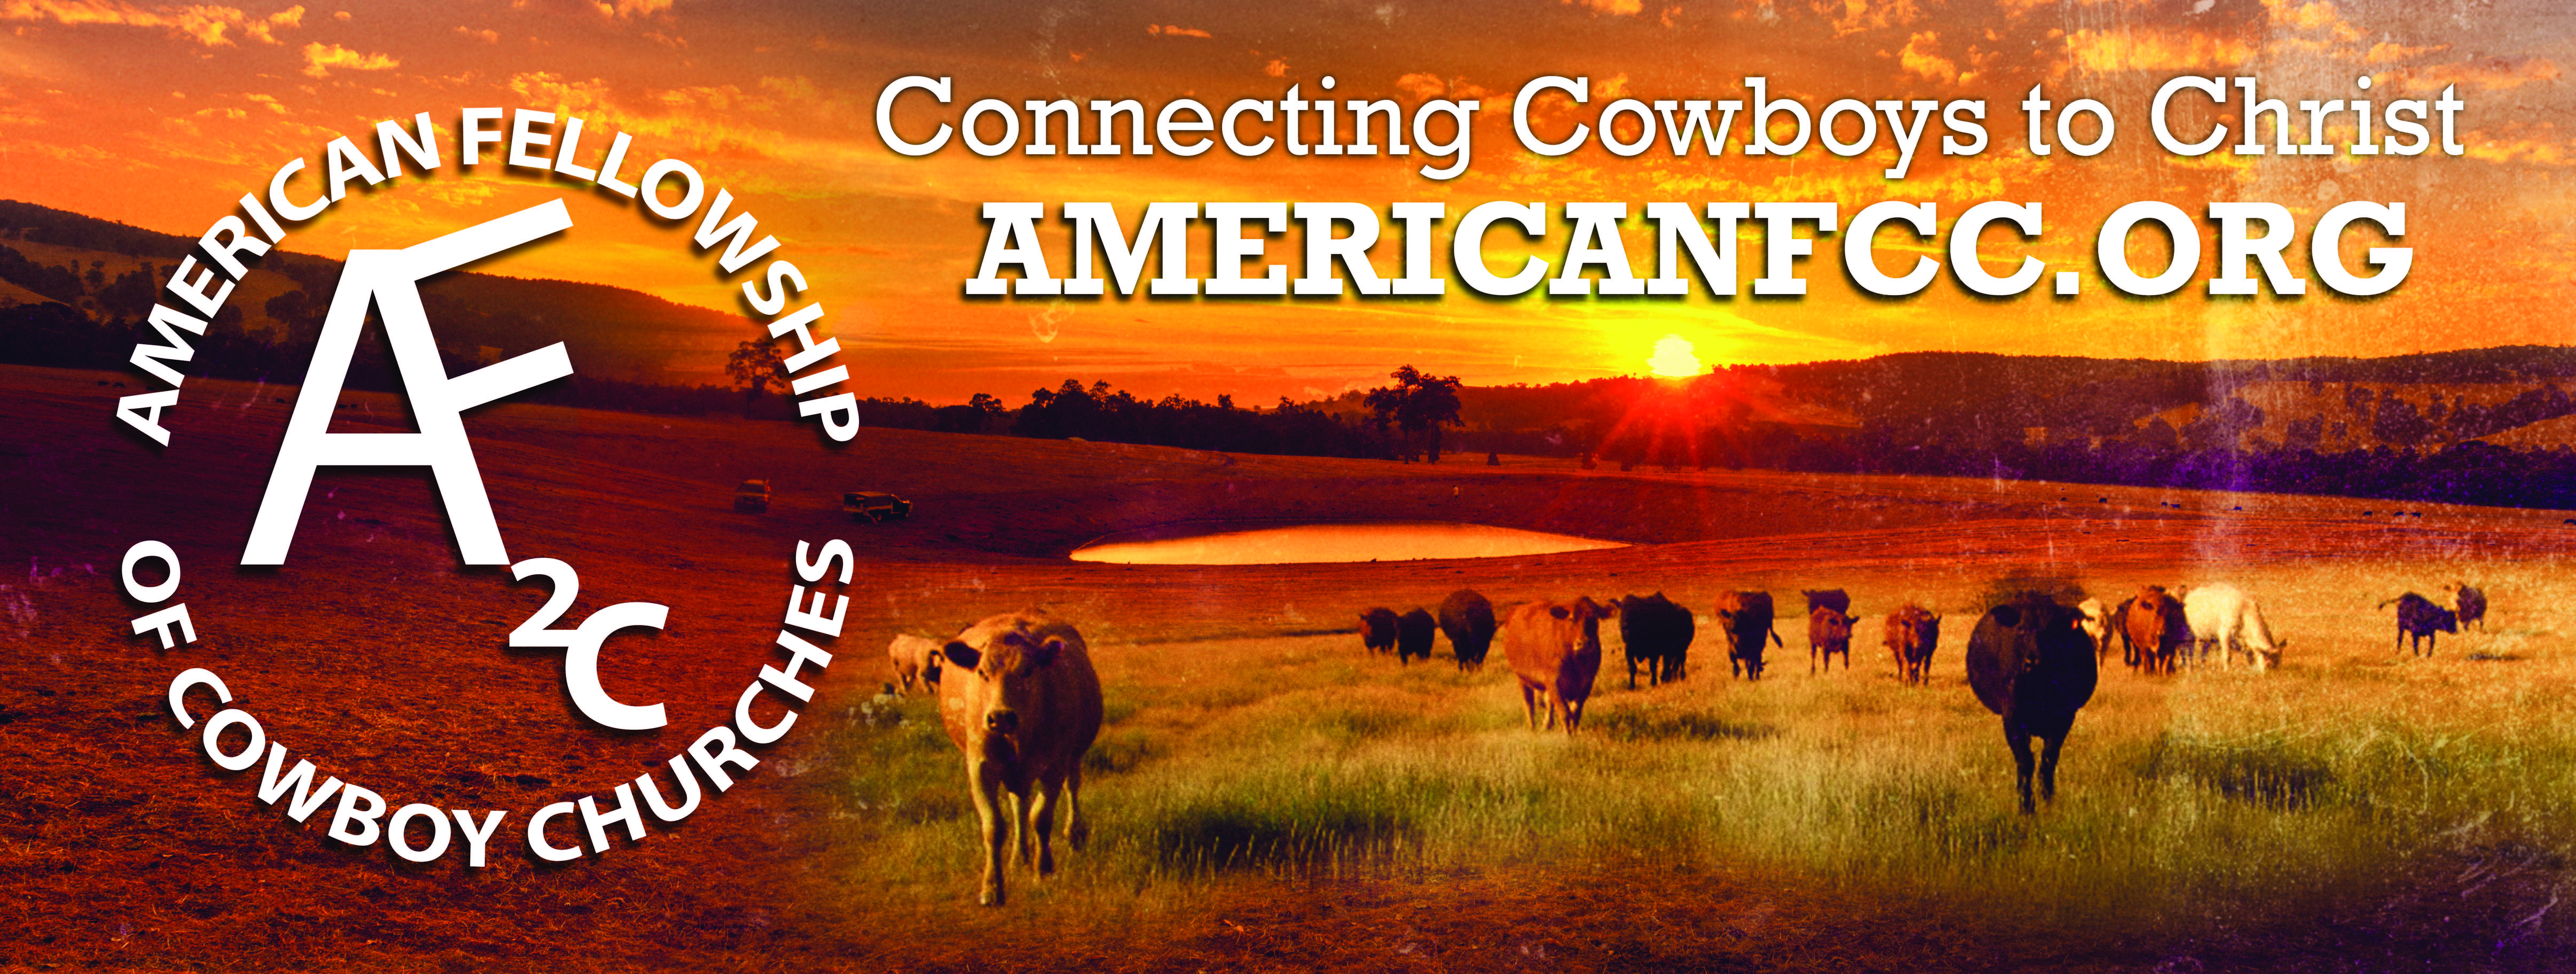 American Fellowship of Cowboy Churches WRCA Sponsor